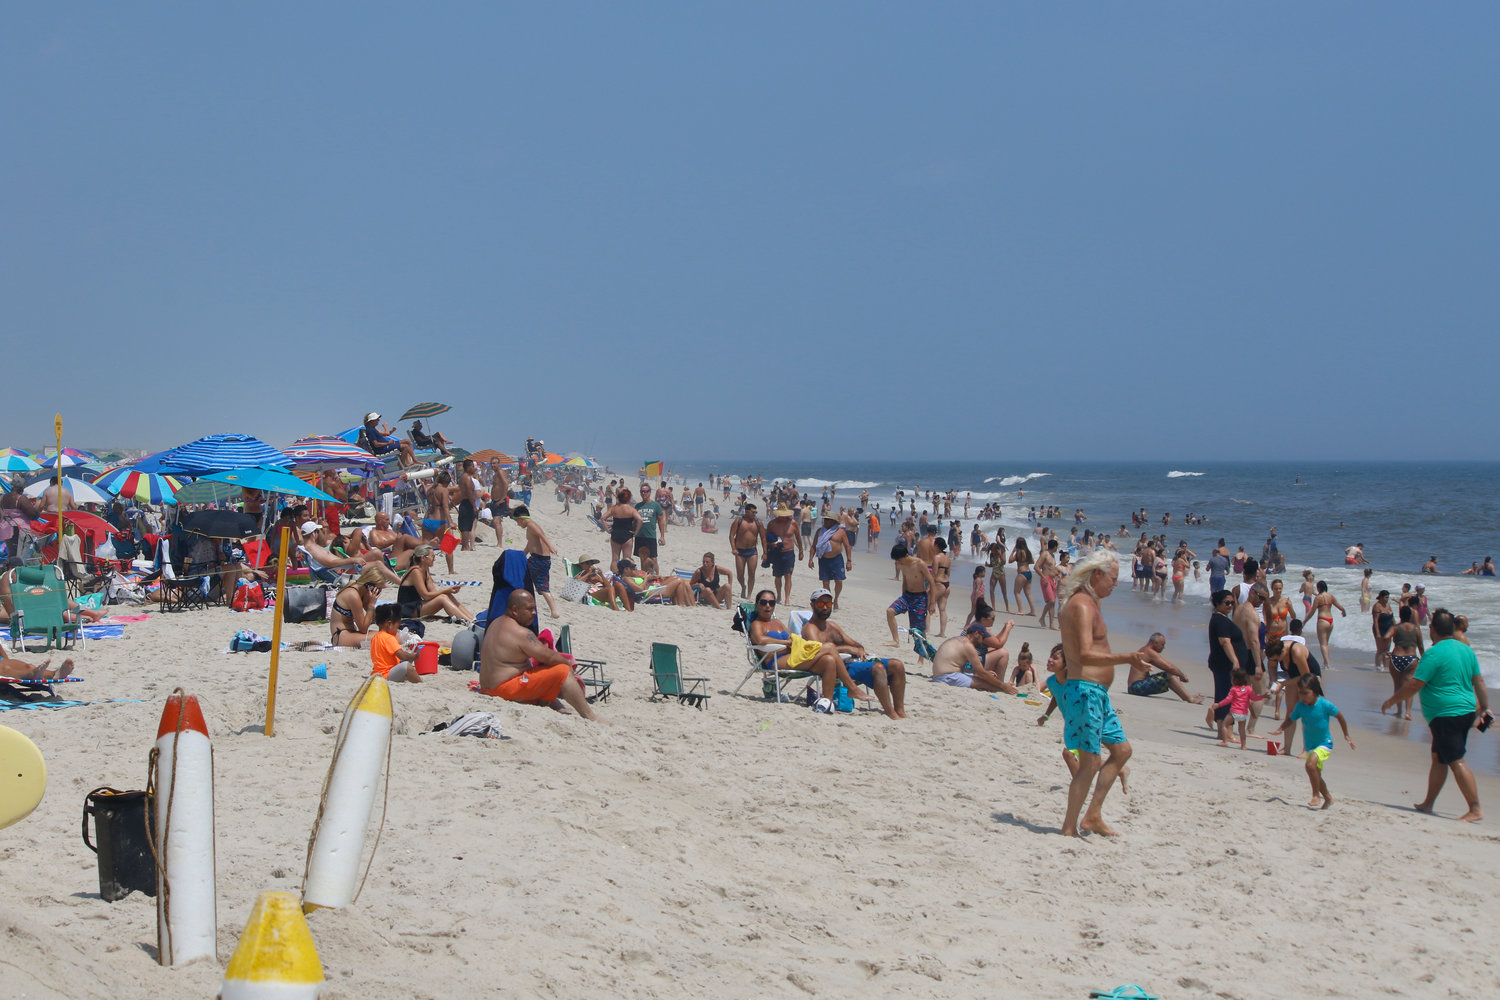 Some of the thousands of visitors who took advantage of cooler beach temperatures to visit Jones Beach State Park during a recent heat wave.